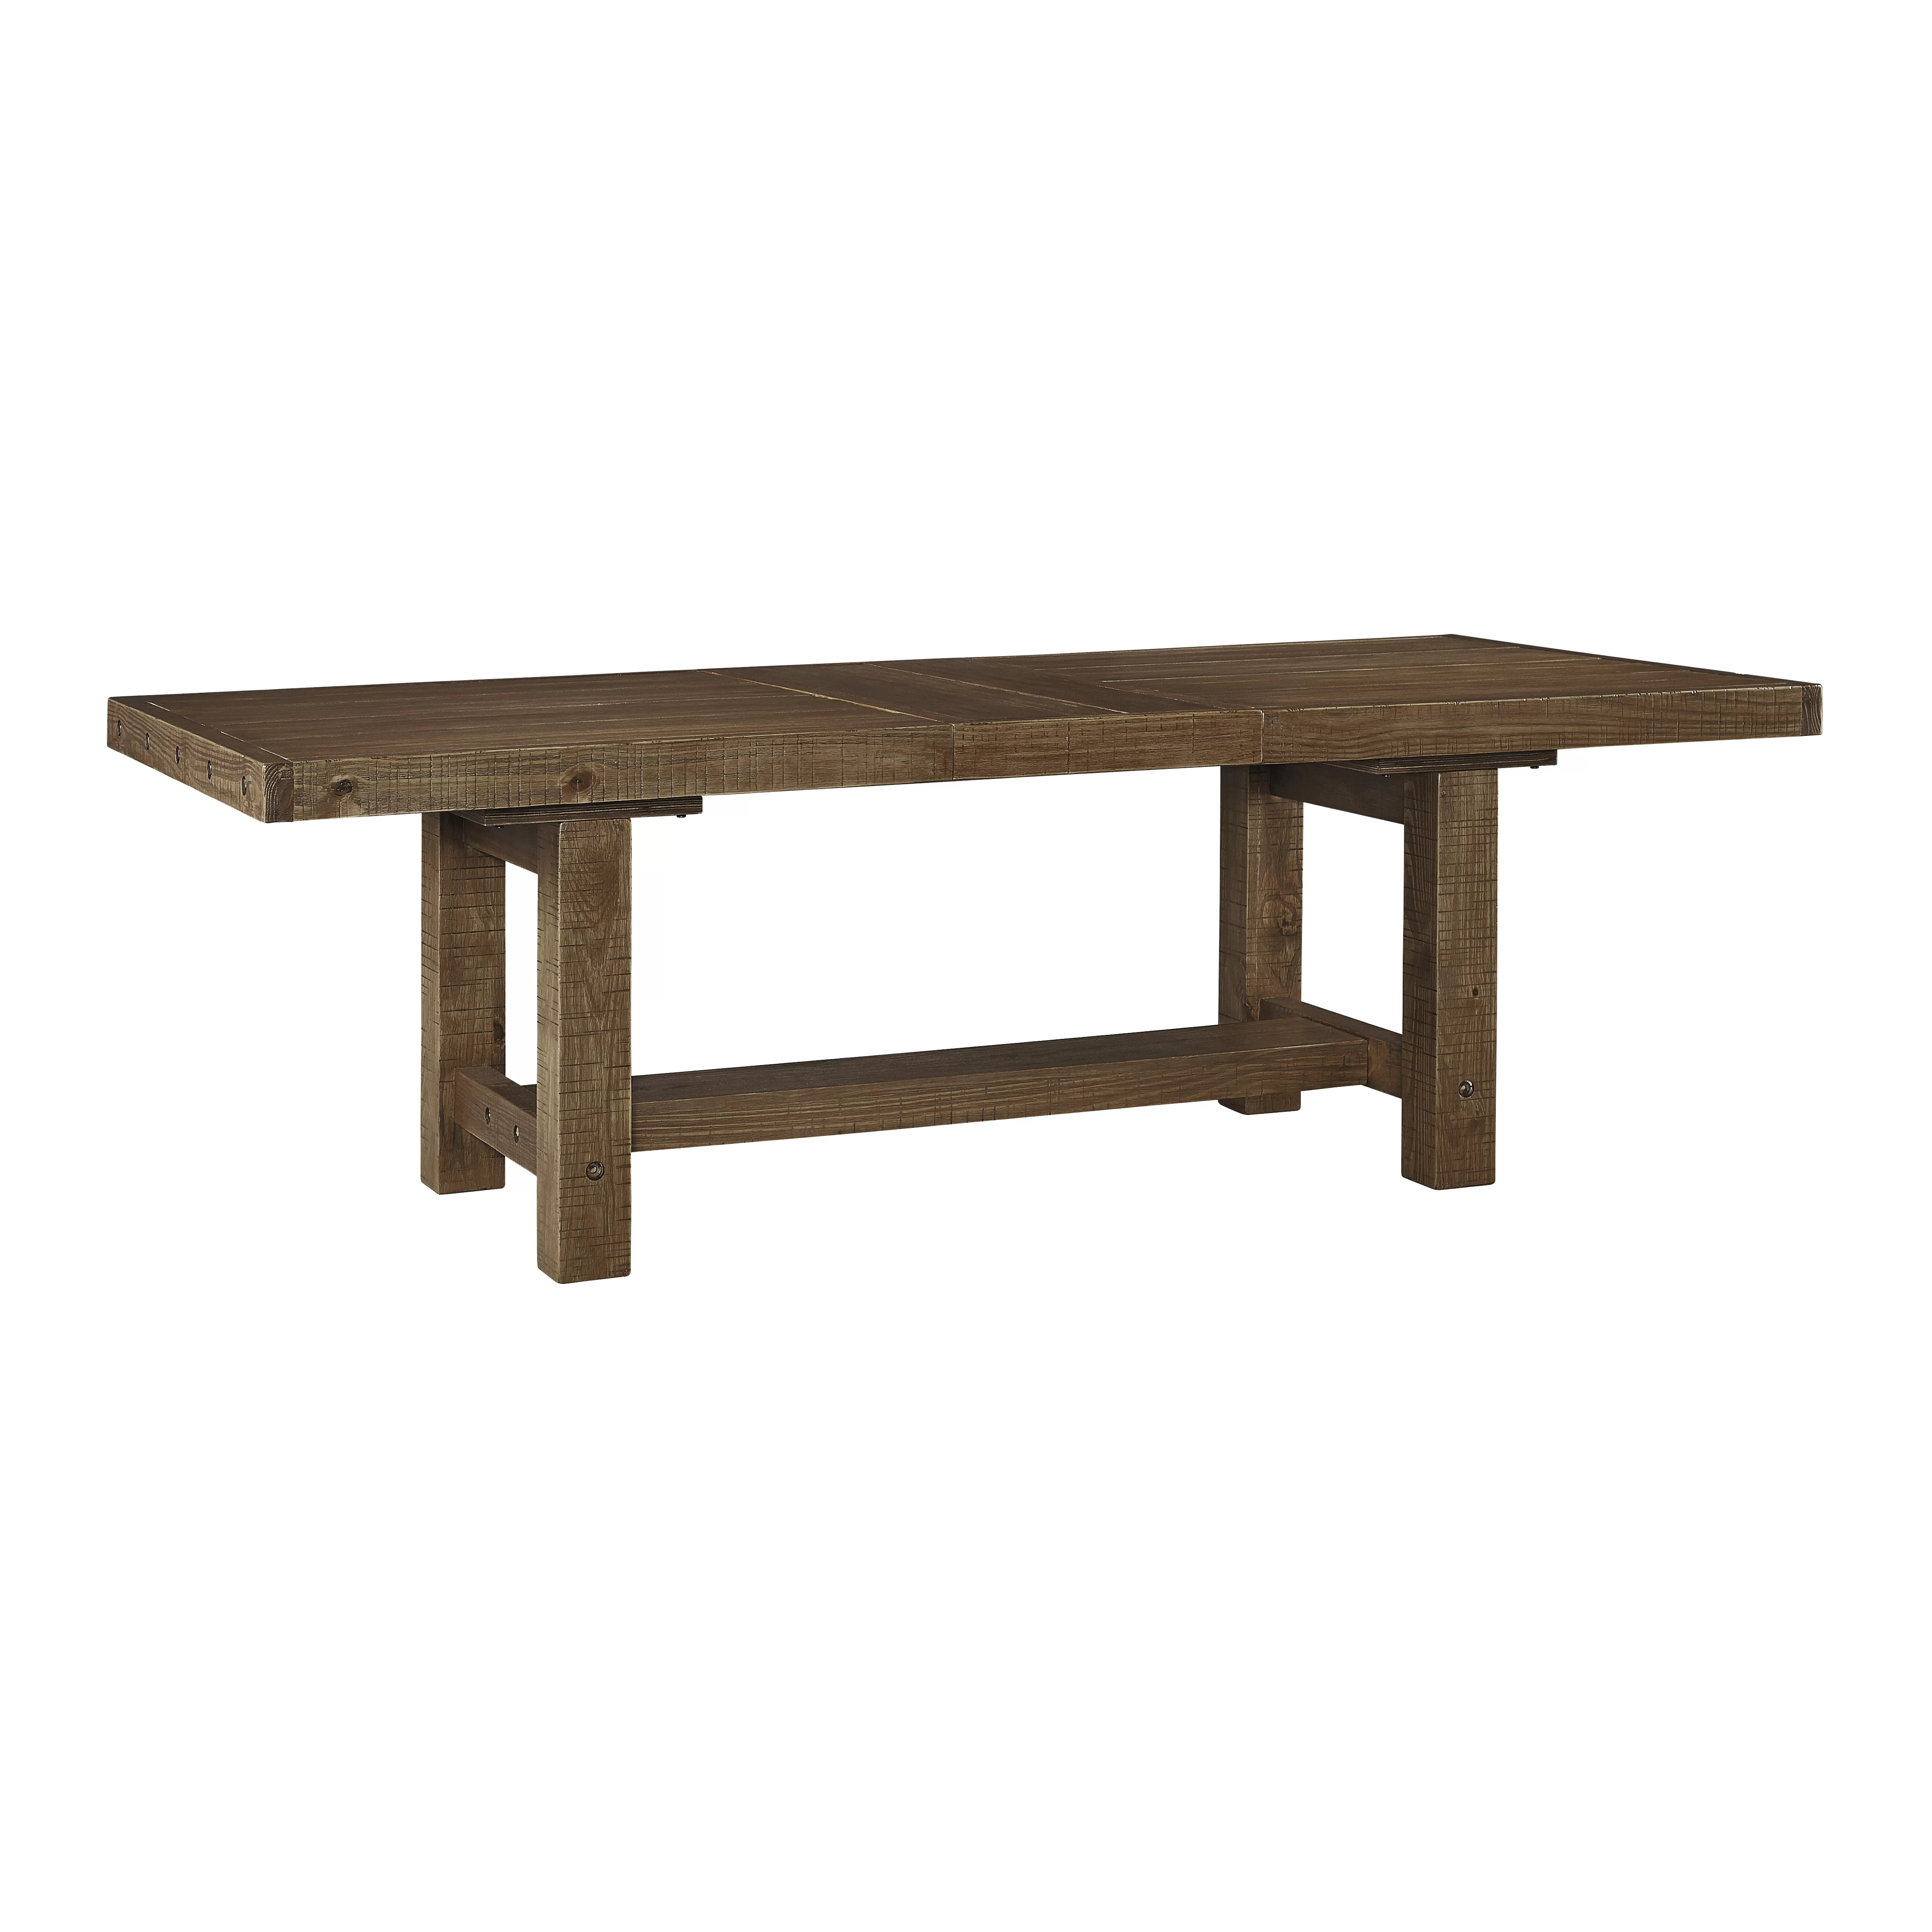 kitchen dining tables c kitchen dining tables QUICK VIEW Krista Extendable Dining Table